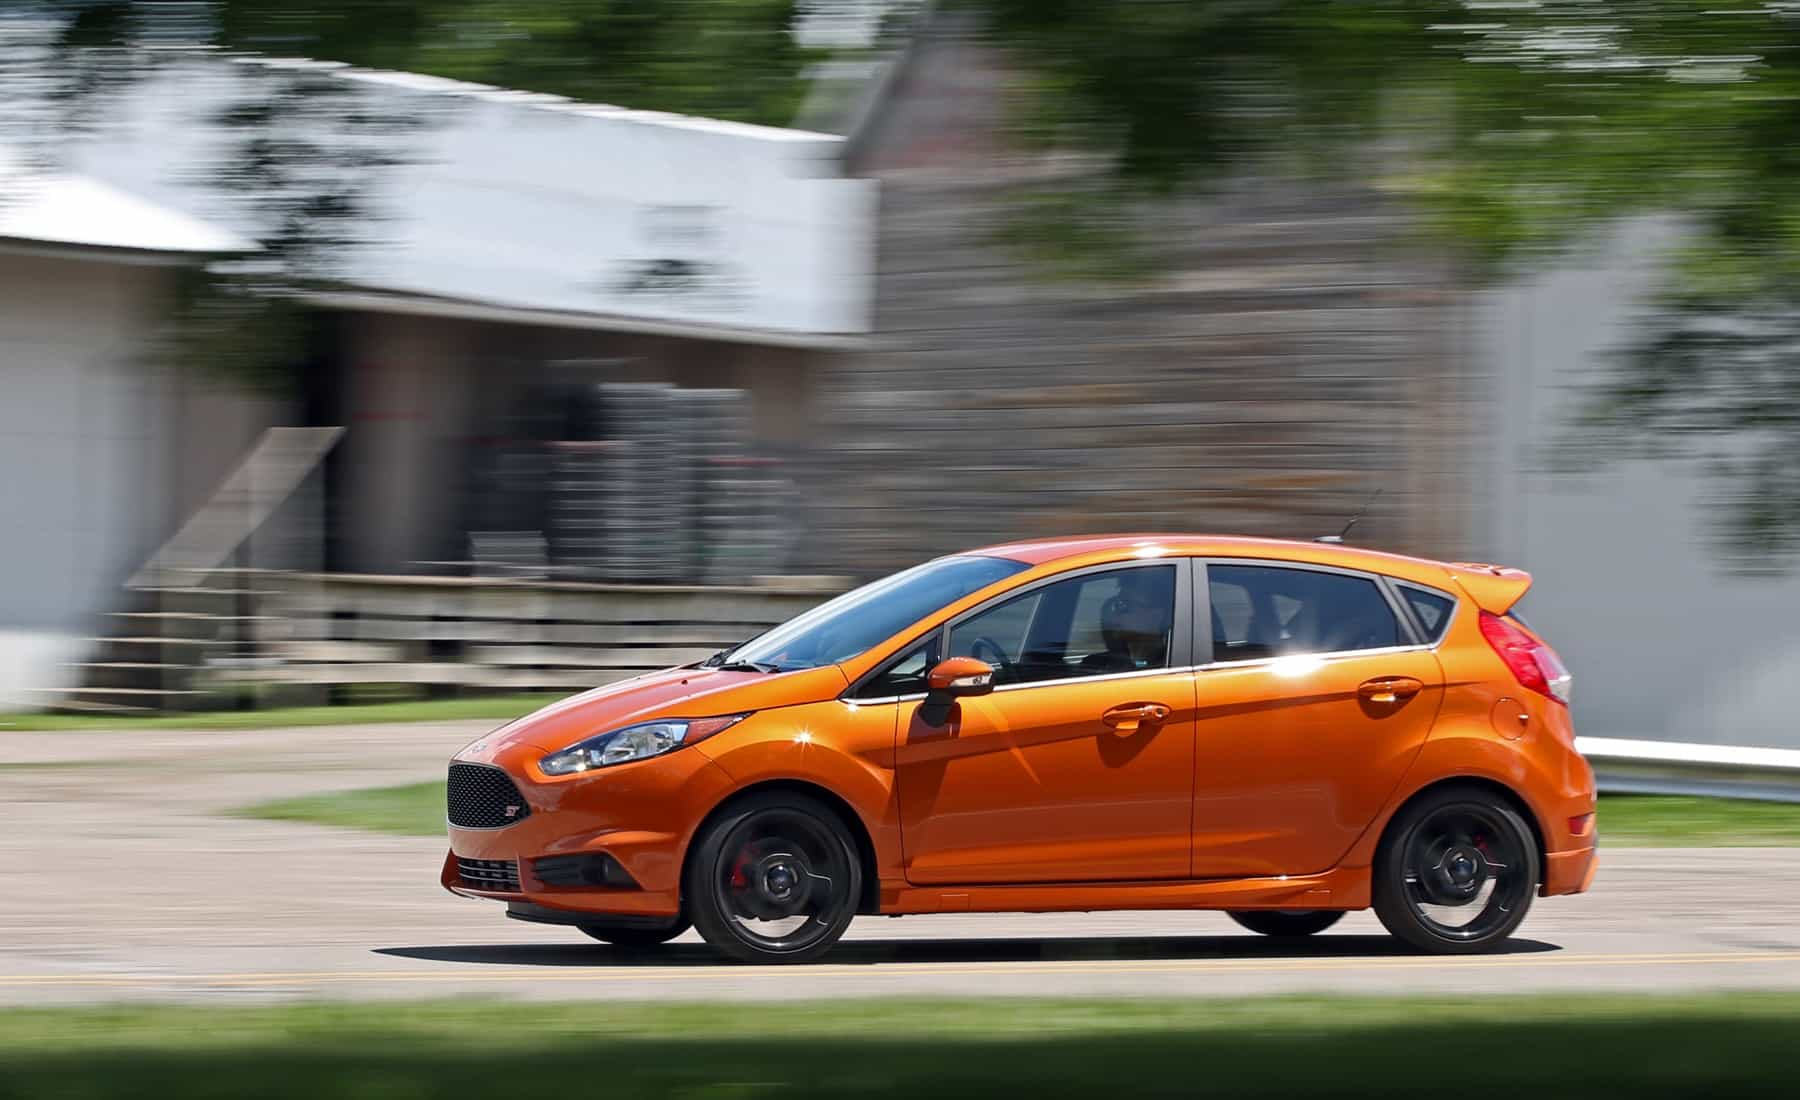 2017 Ford Fiesta ST Test Drive Orange Metallic (Photo 38 of 47)